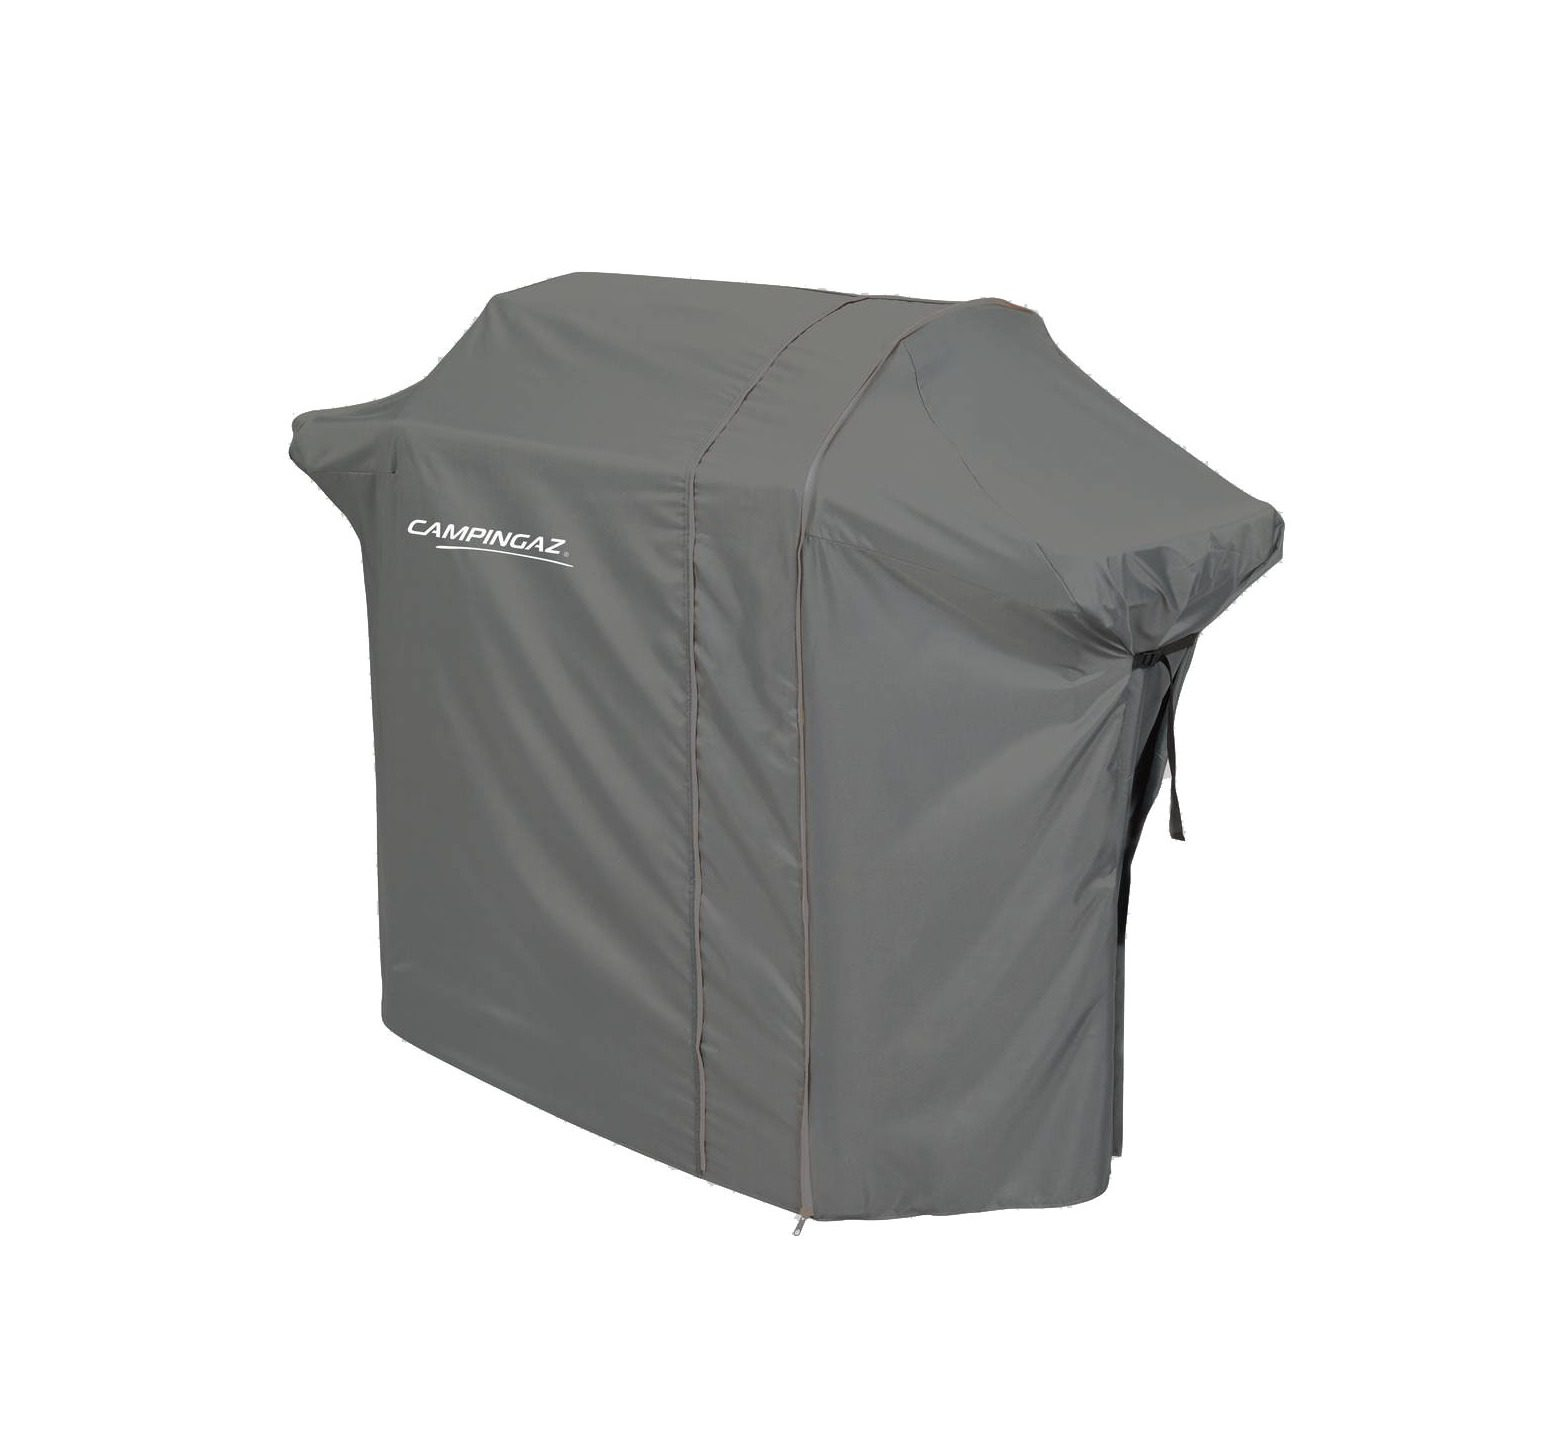 Campingaz Master series barbecue cover